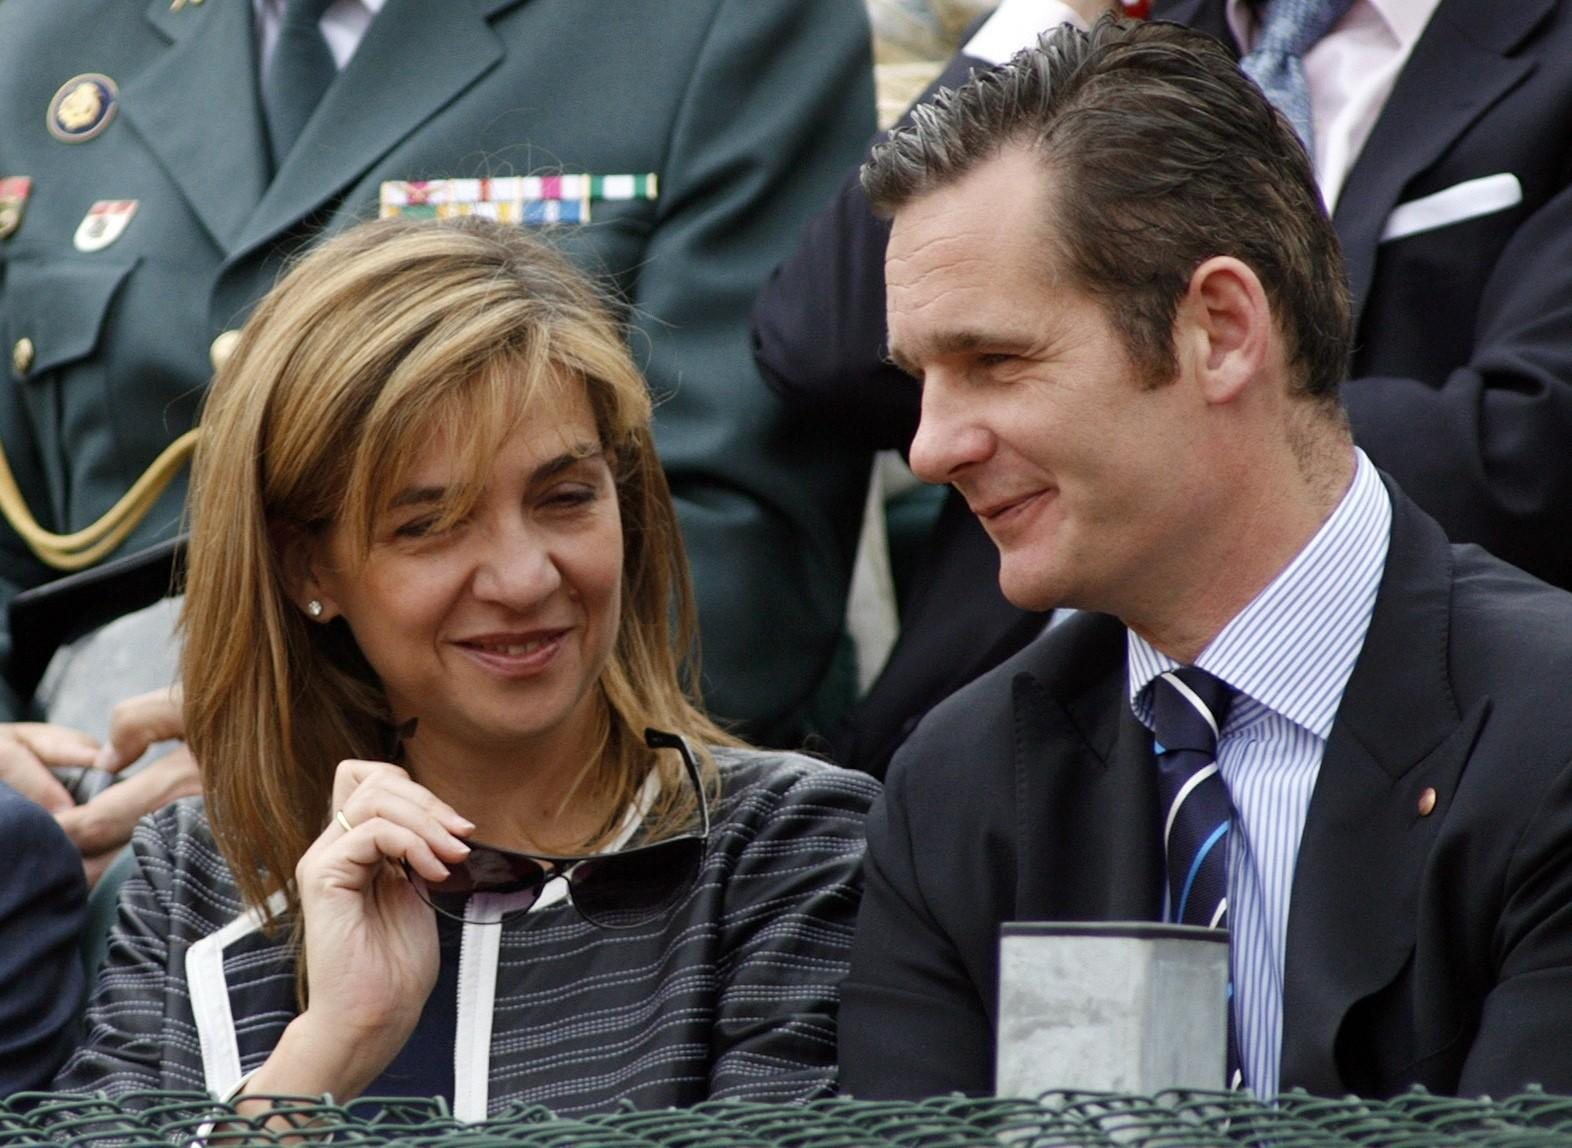 Spain's Infanta Cristina and her husband Inaki Urdangarin in 2007. A Spanish judge charged Princess Cristina - younger daughter of King Juan Carlos - with tax fraud and money laundering on Jan. 7, possibly paving the way to an unprecedented trial of a member of the royal family.